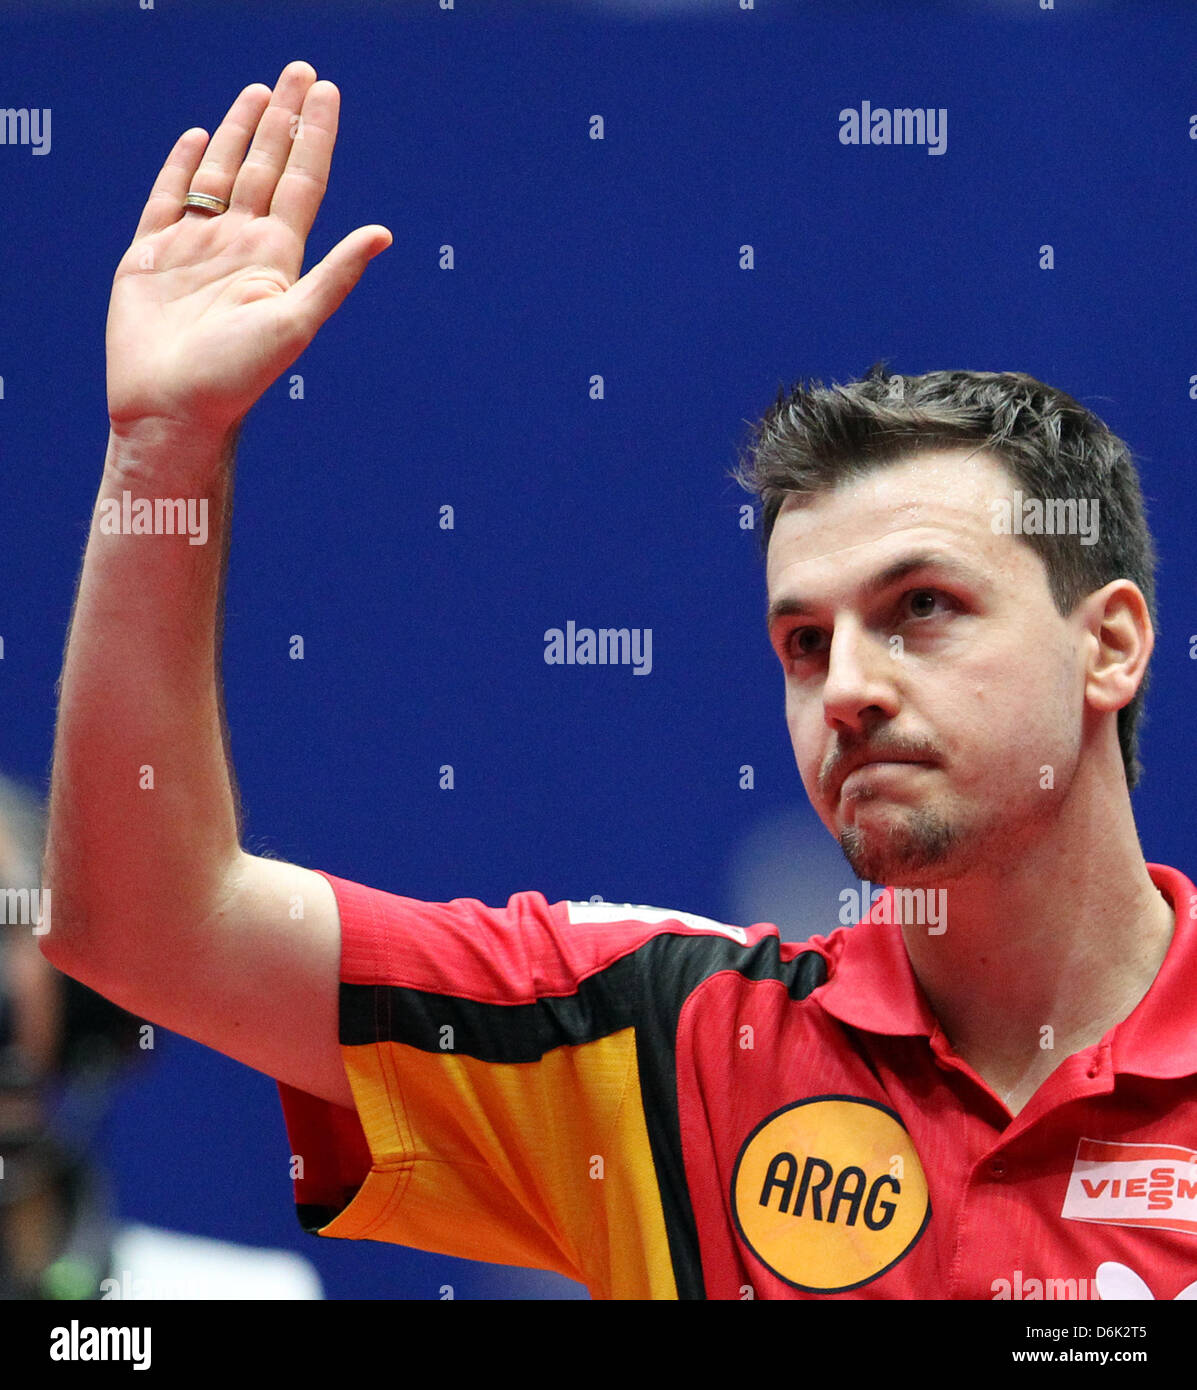 Germany's Timo Boll celebrates his victory during the men's quarterfinal match against Sweden's Lundqvist - Stock Image